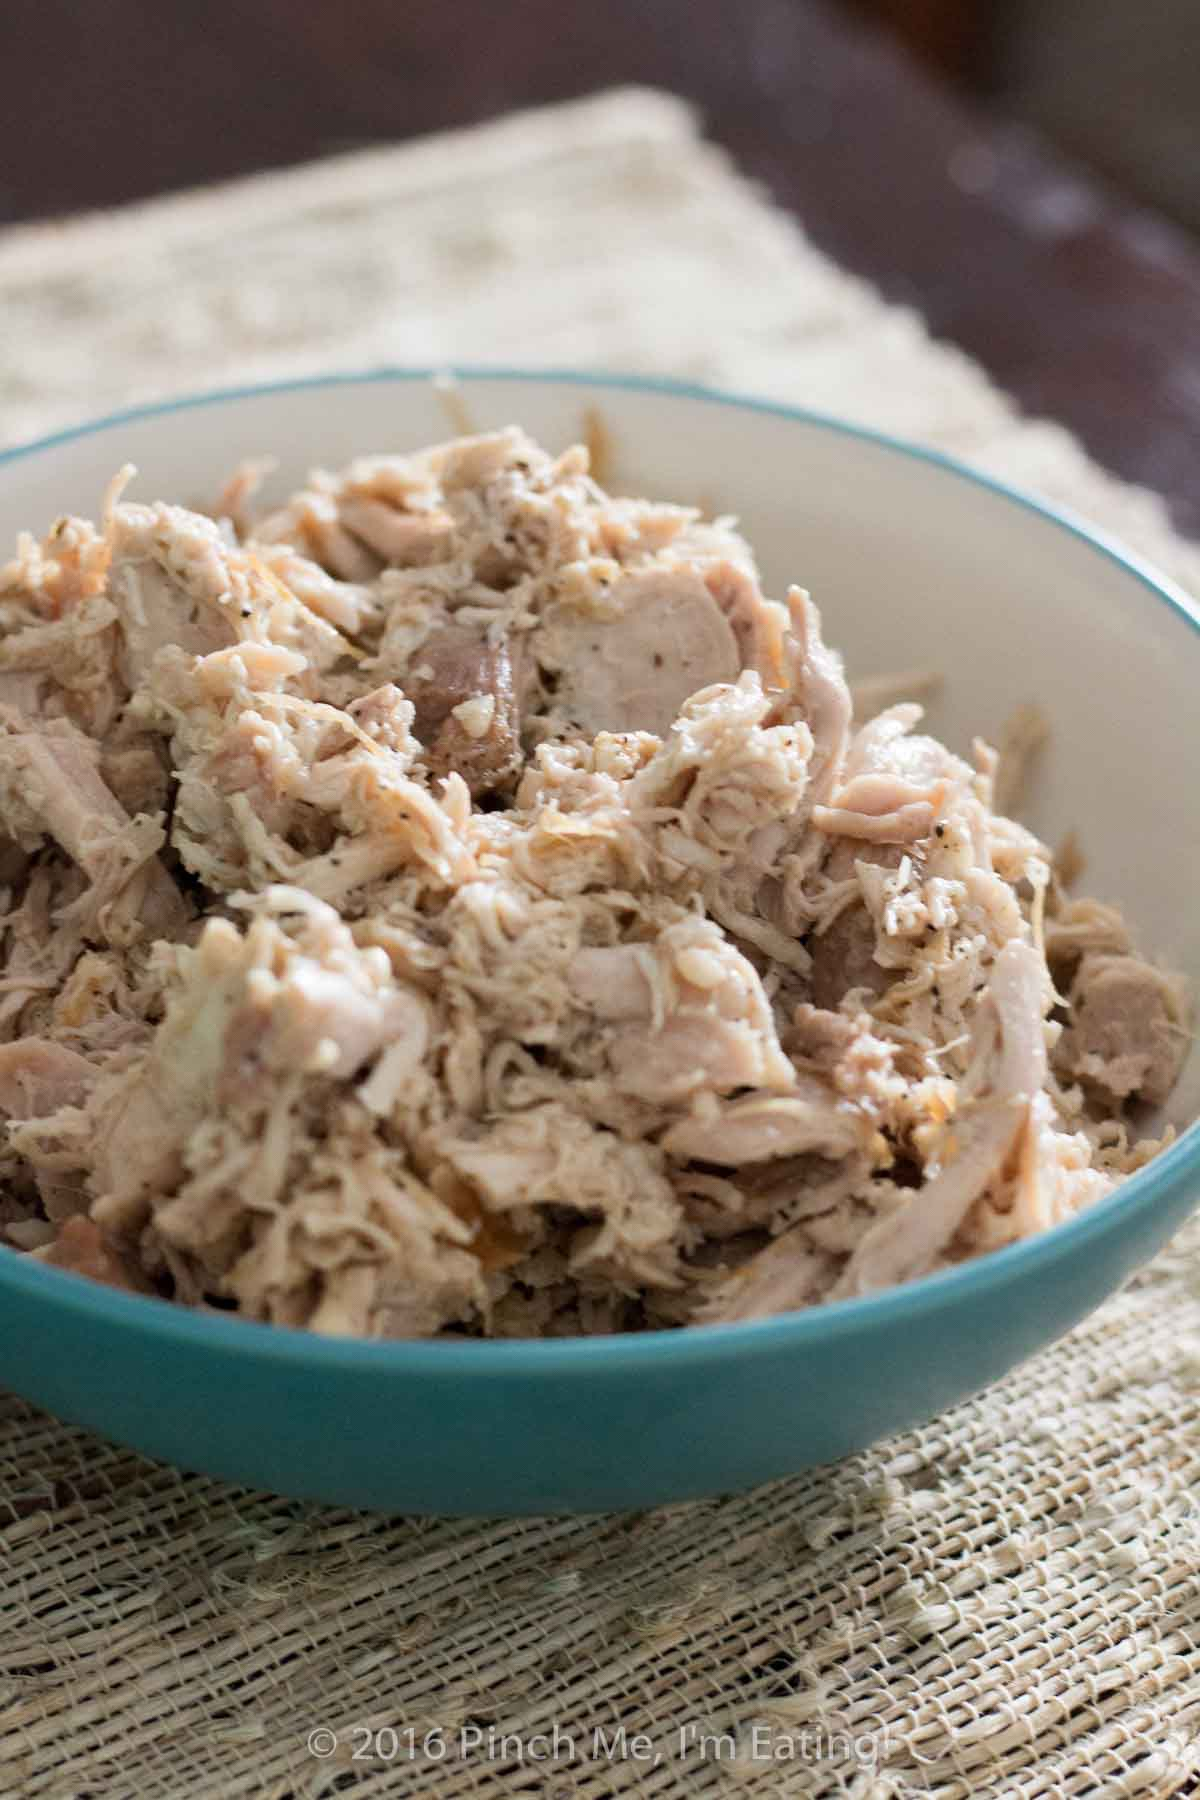 How to make shredded chicken for recipes in under 30 minutes! Flavorful, juicy, and great to have on hand for recipes!